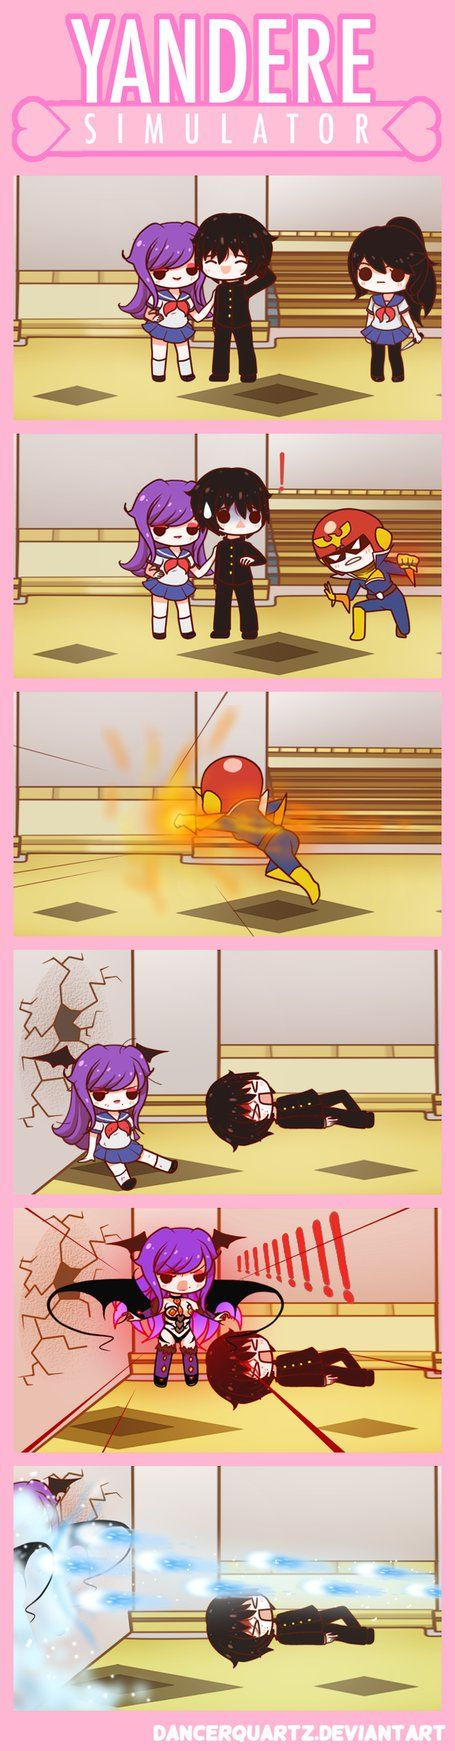 Yandere Comic - Bad Senpai! by DancerQuartz on DeviantArt